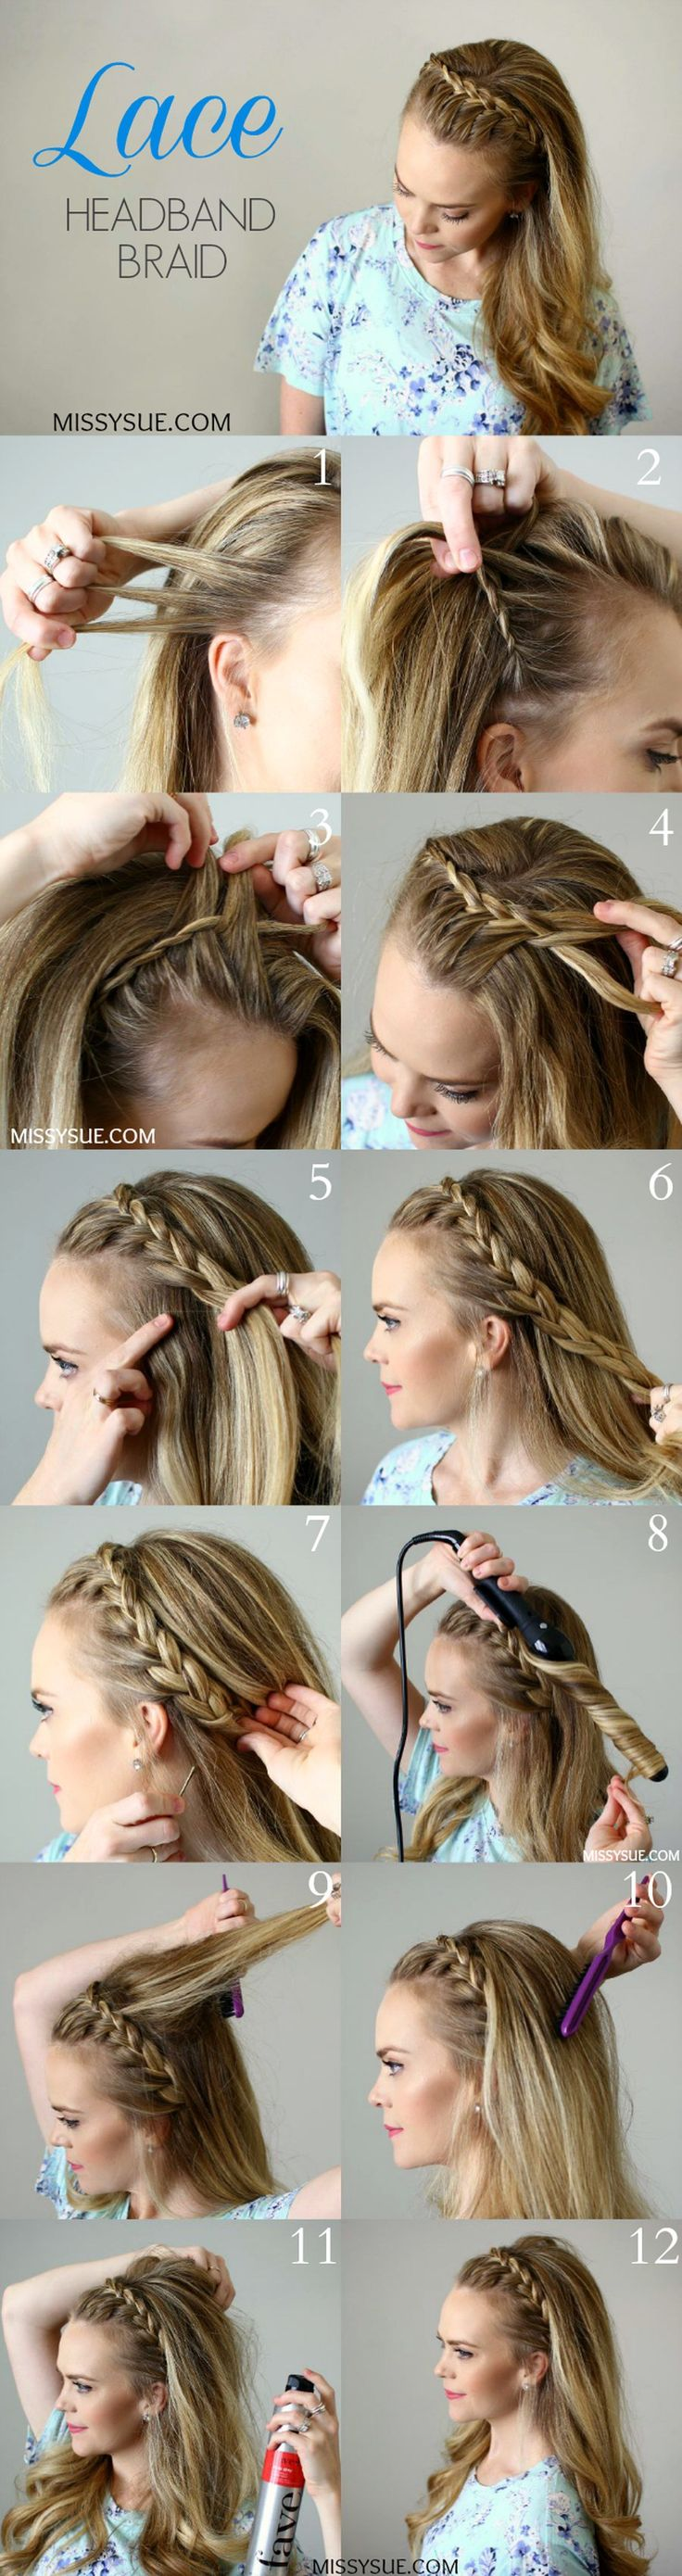 Headband braid                                                                                                                                                                                 Más